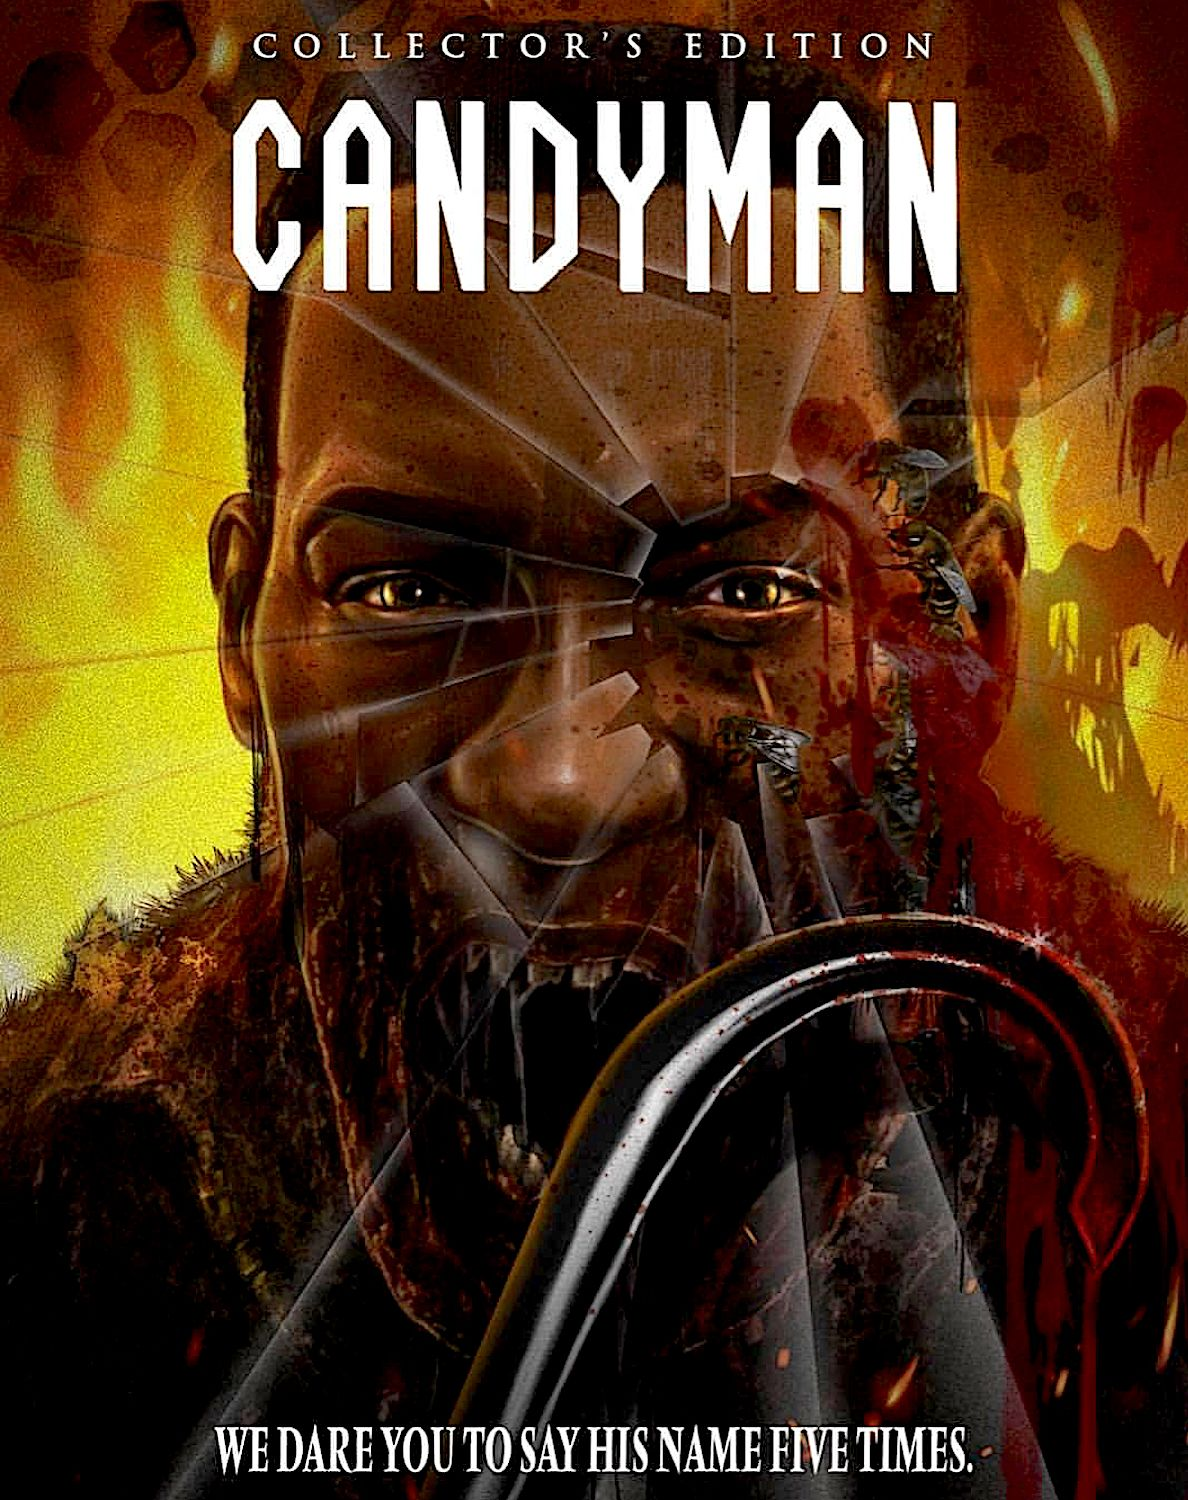 Candyman Limited Edition Collector S Edition Blu Ray Slipcover Scream Factory Scary Movie Characters Horror Movie Art Horror Movie Icons